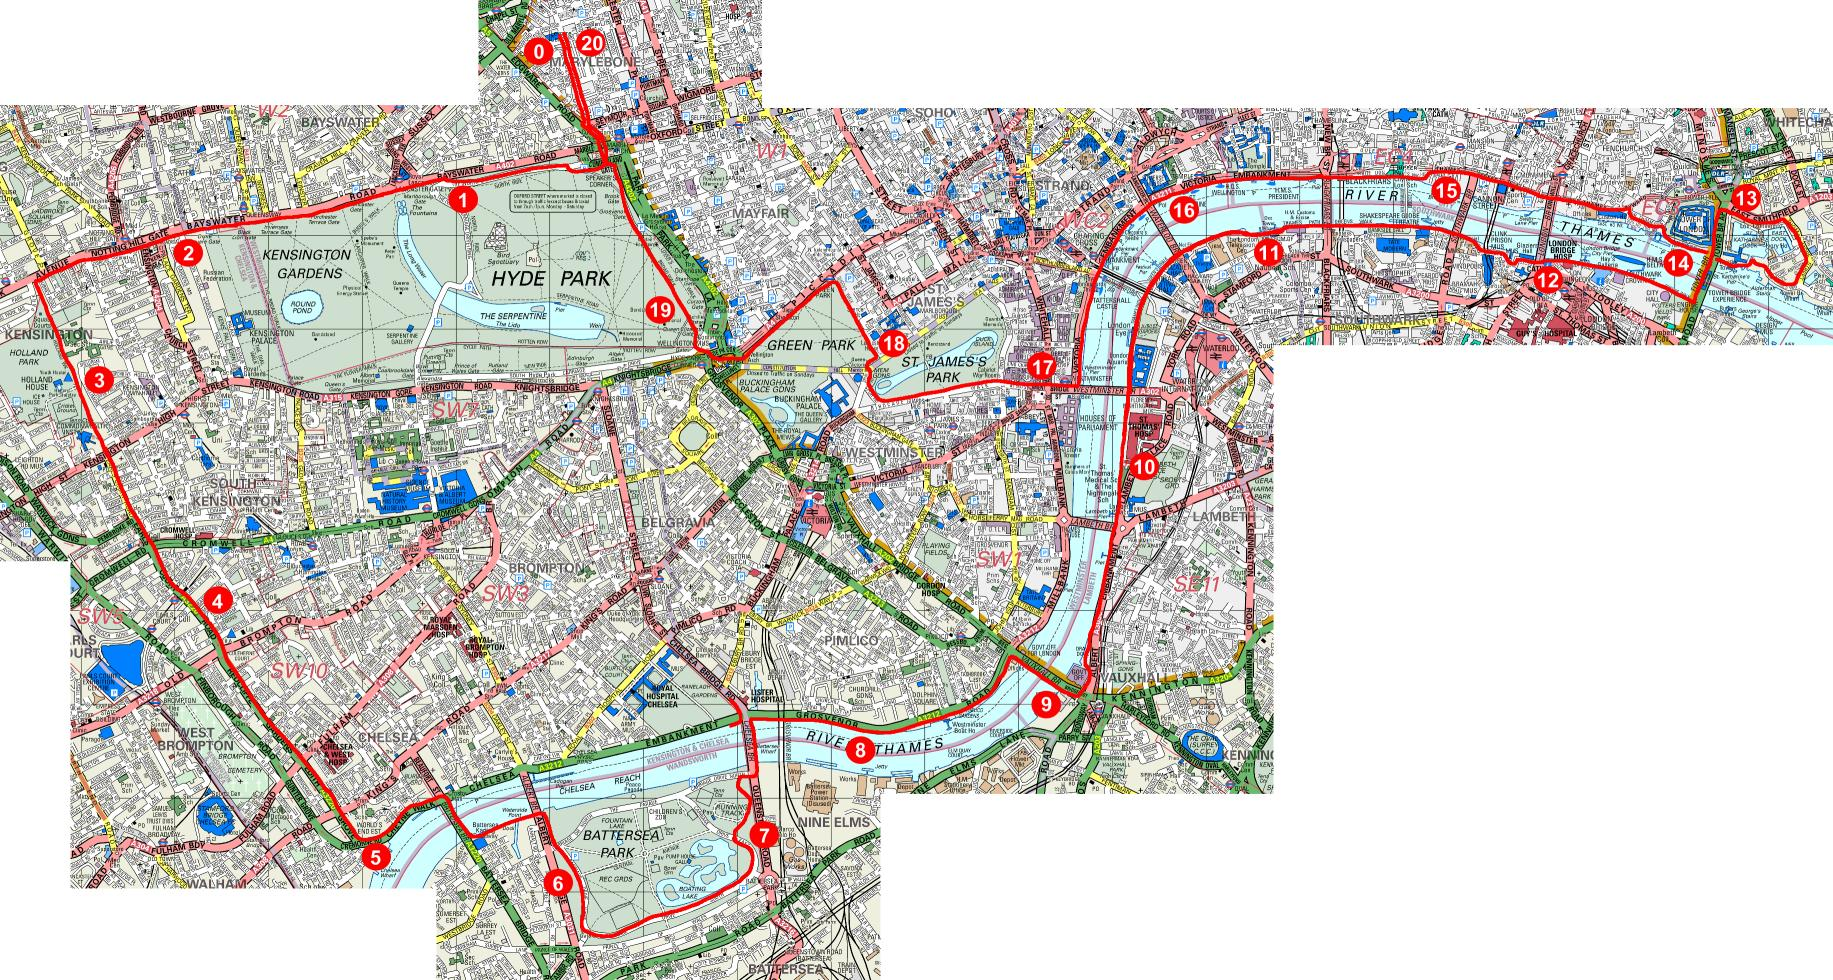 Kensington, Battersea and Tower route map